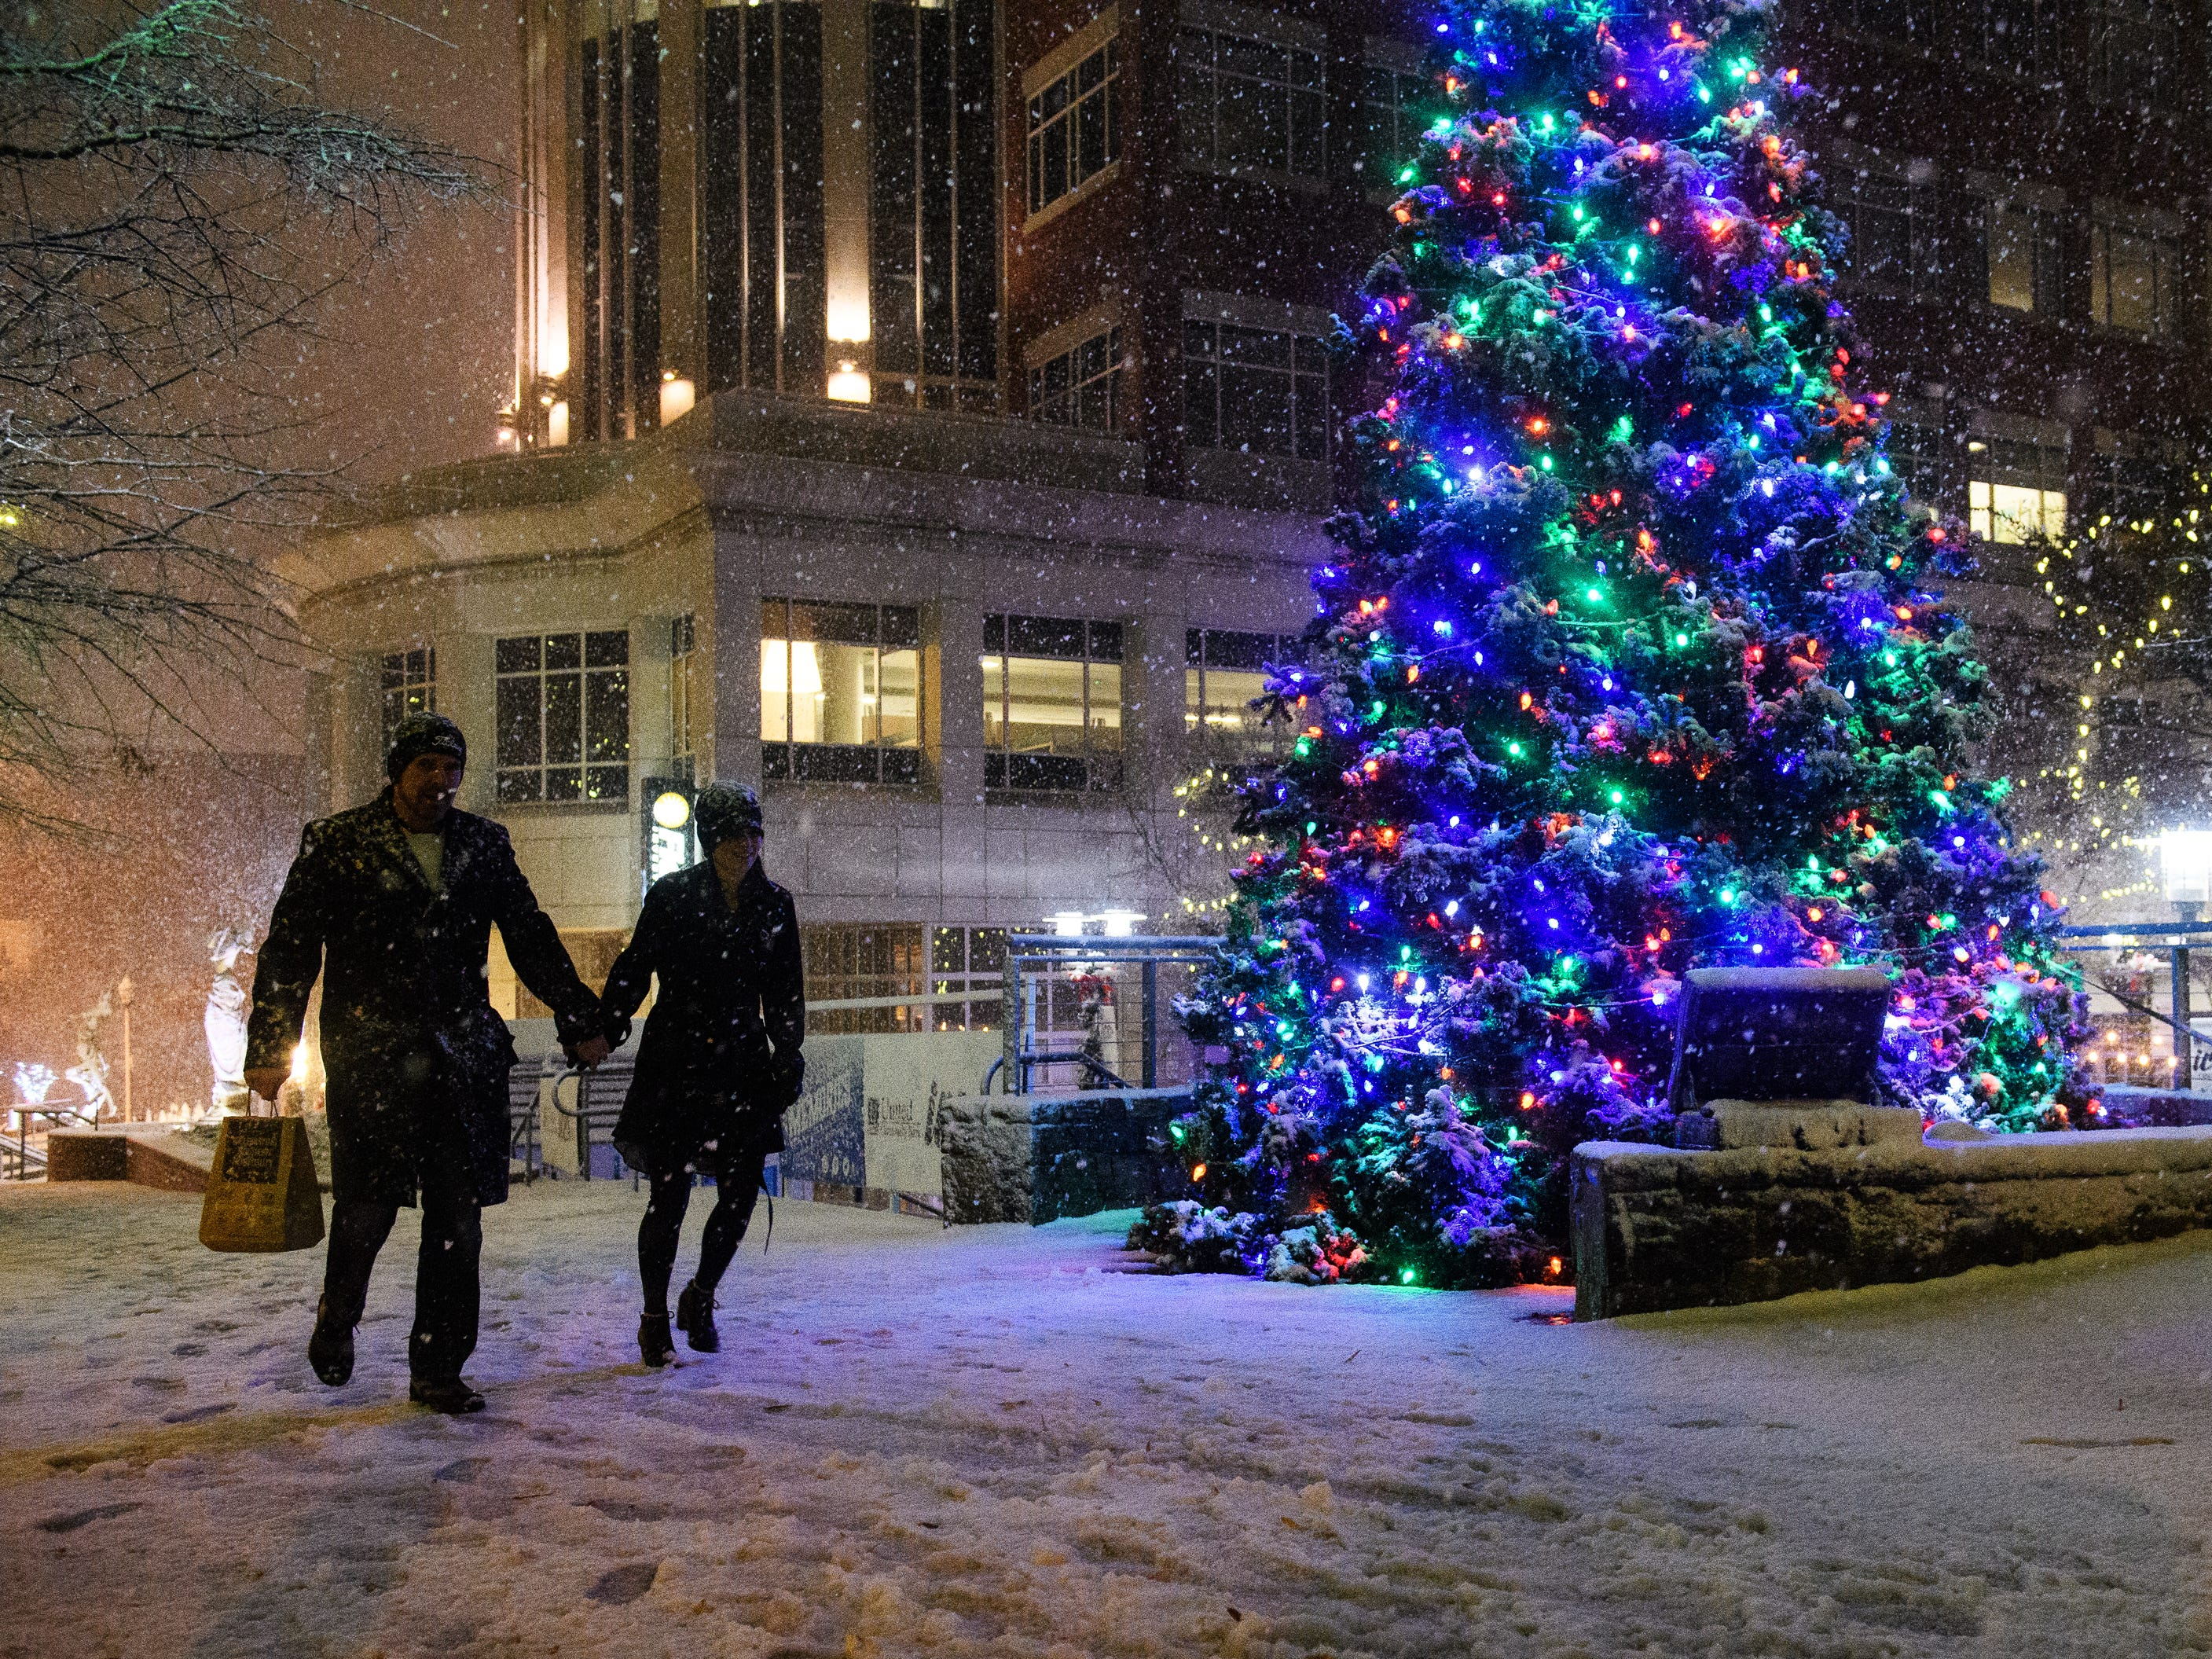 Chad and Shannan Ackerman walk down Main Street as snow begins to fall in Greenville, S.C., Sunday, Dec. 9, 2018.